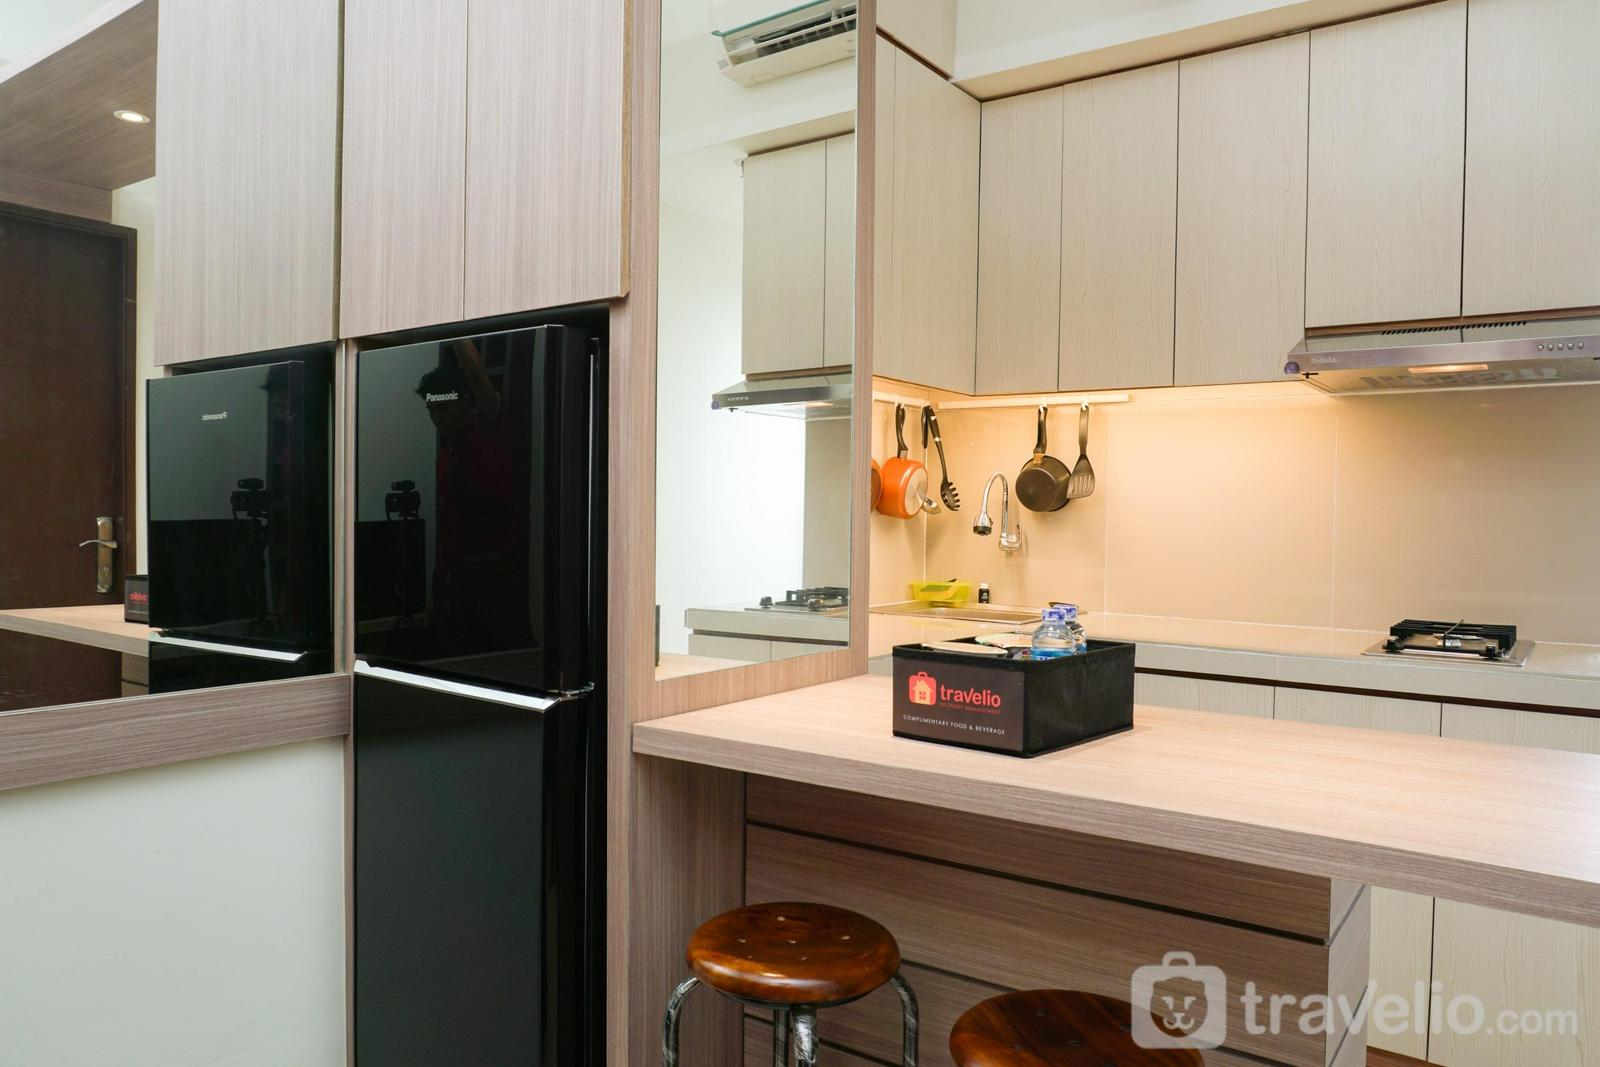 Apartemen Puri Park View - Warm and Cozy 1BR Puri Park View Apartment By Travelio